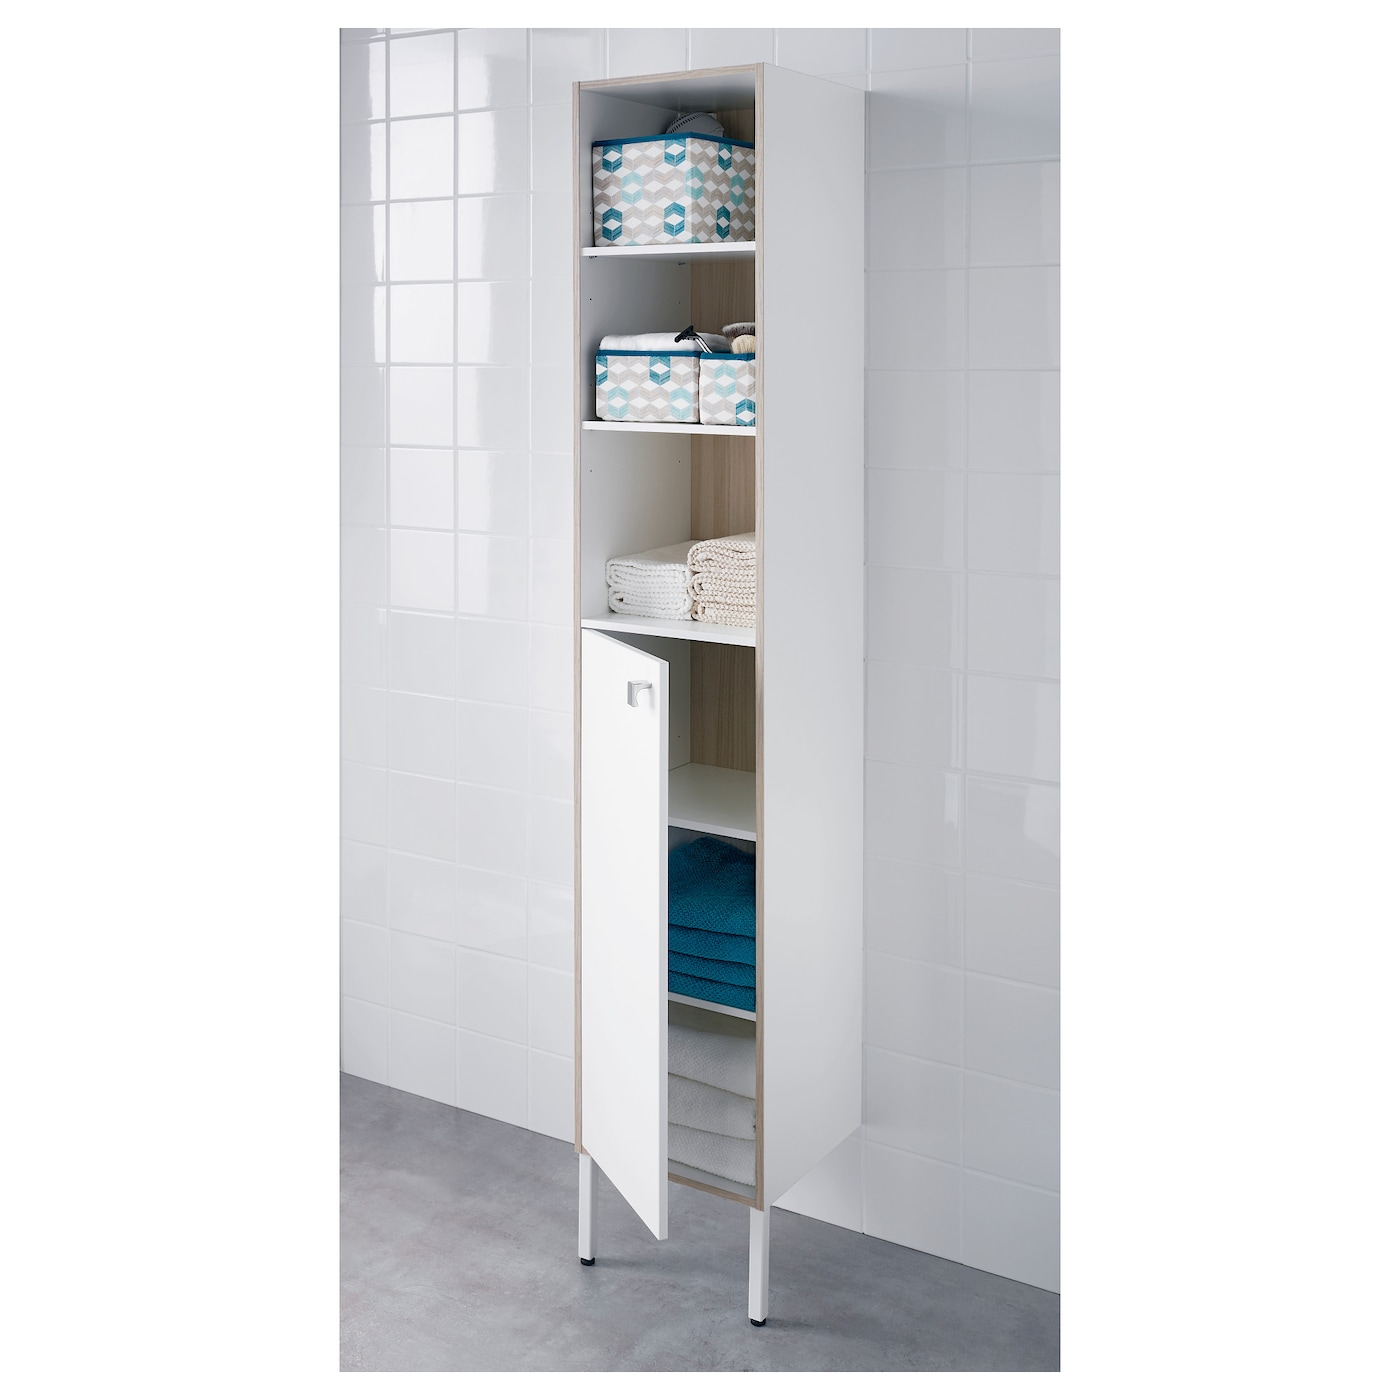 IKEA TYNGEN High Cabinet Suitable For A Smaller Bathroom, As The Cabinet  Frame Is Just